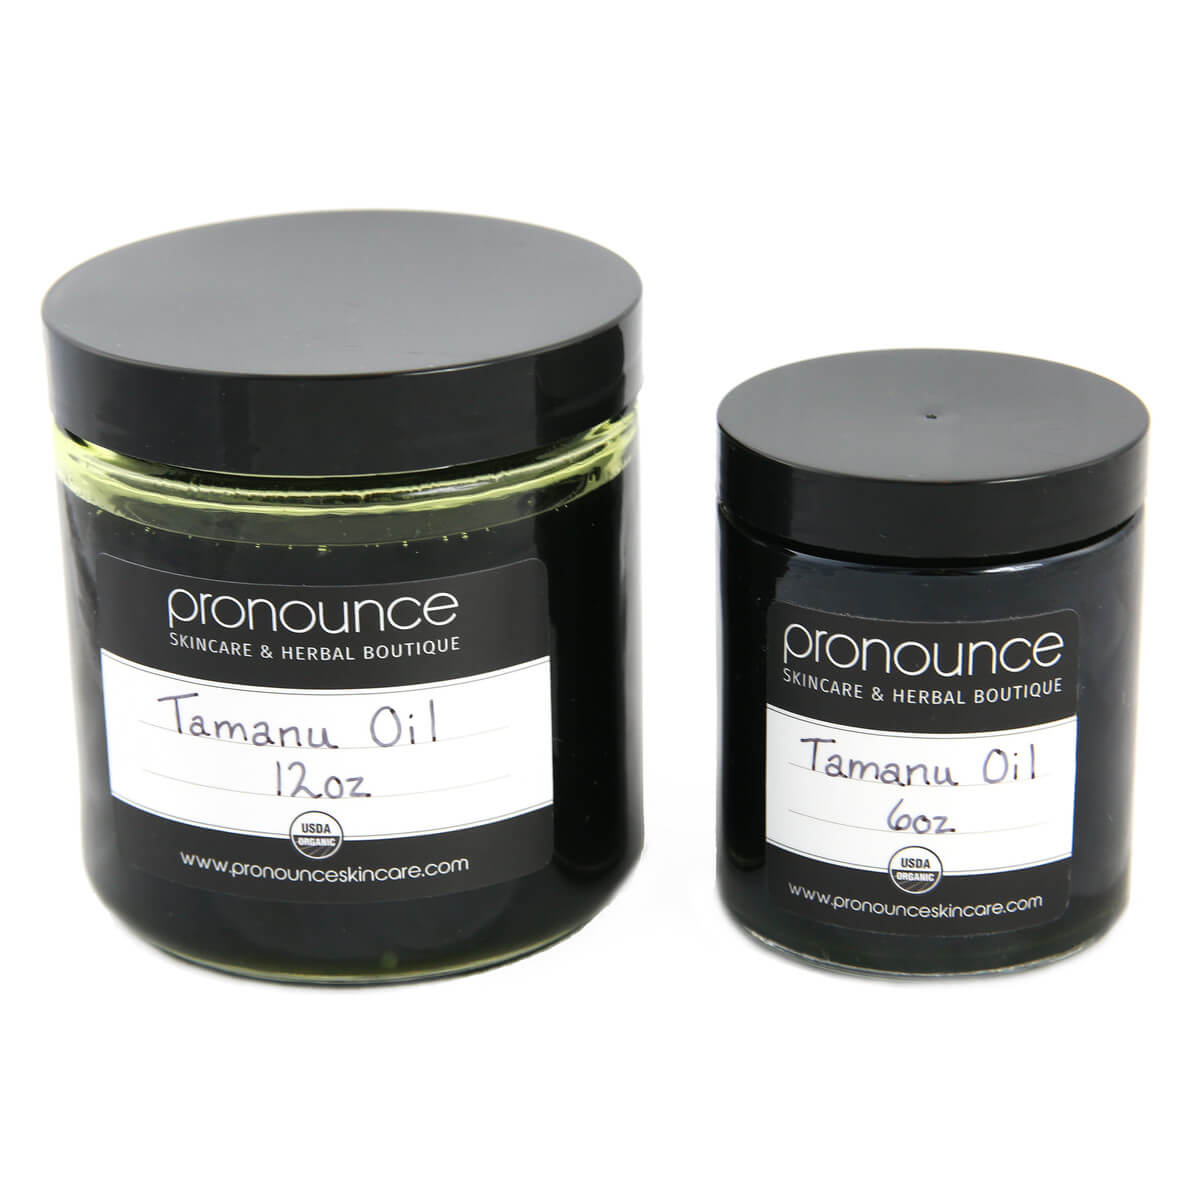 Certified Organic Tamanu Oil 2 Sizes Pronounce Skincare & Herbal Boutique